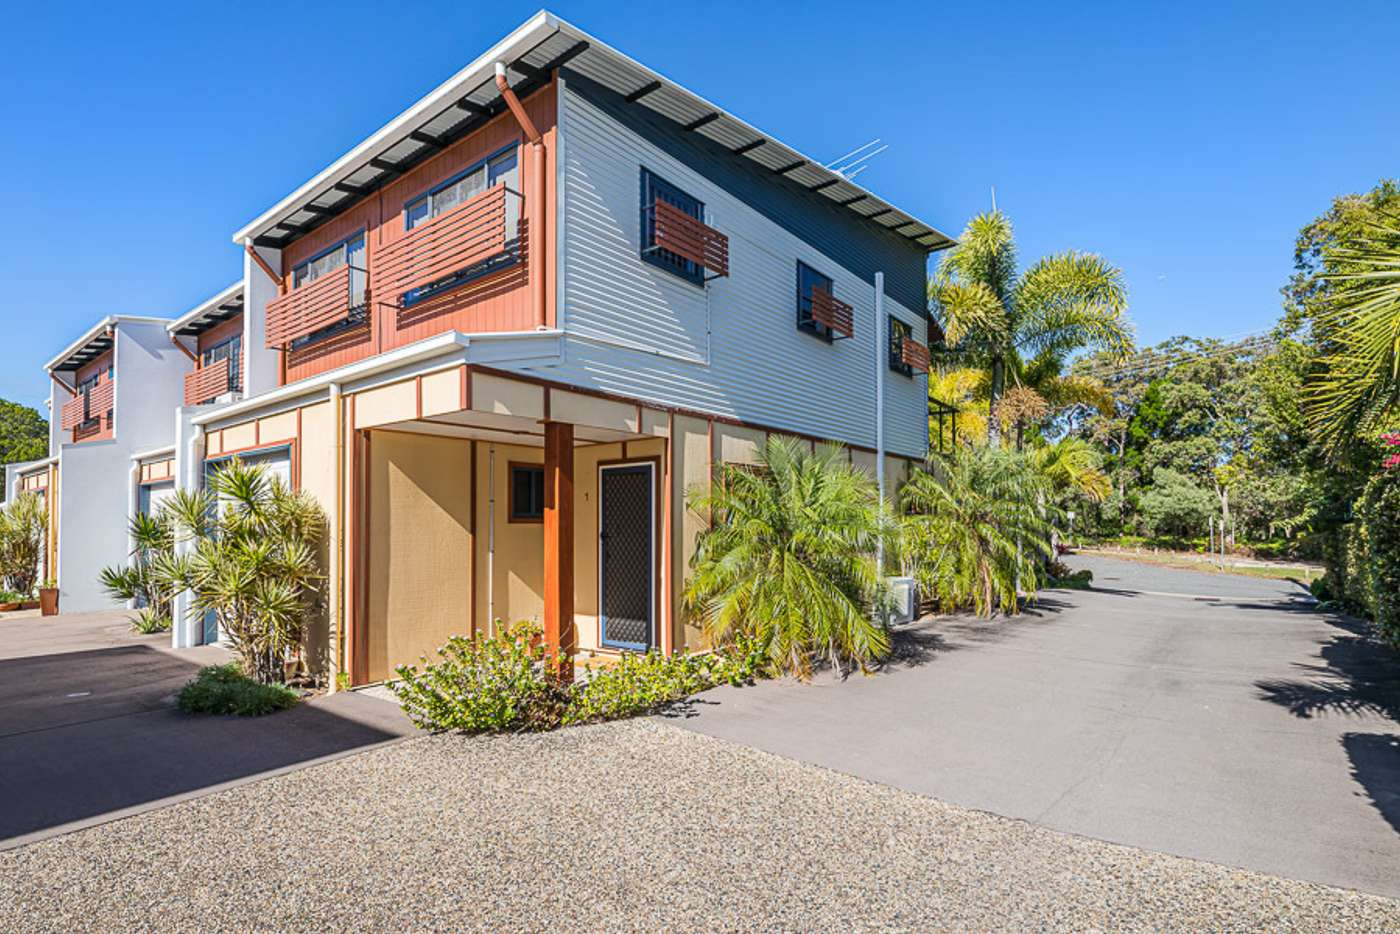 Main view of Homely unit listing, 1/49 The Boulevard, Bongaree QLD 4507